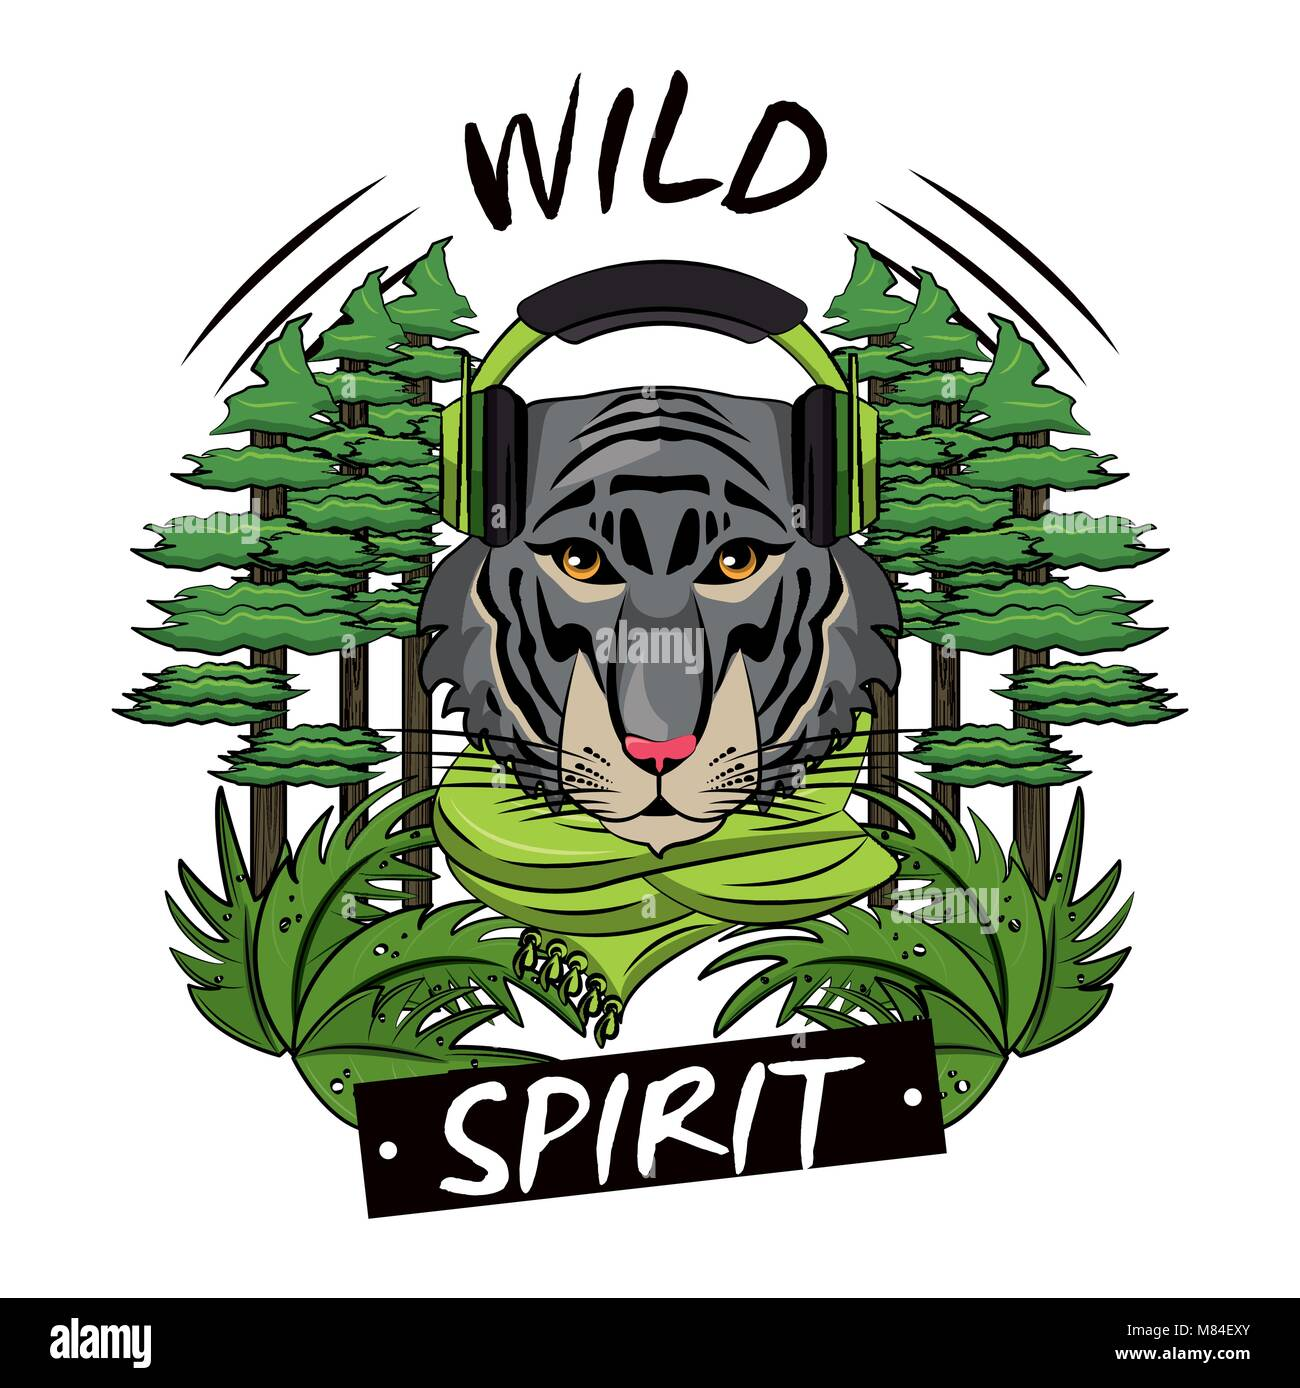 Cool Tiger On Nature Print For Tshirt Vector Illustration Graphic Design